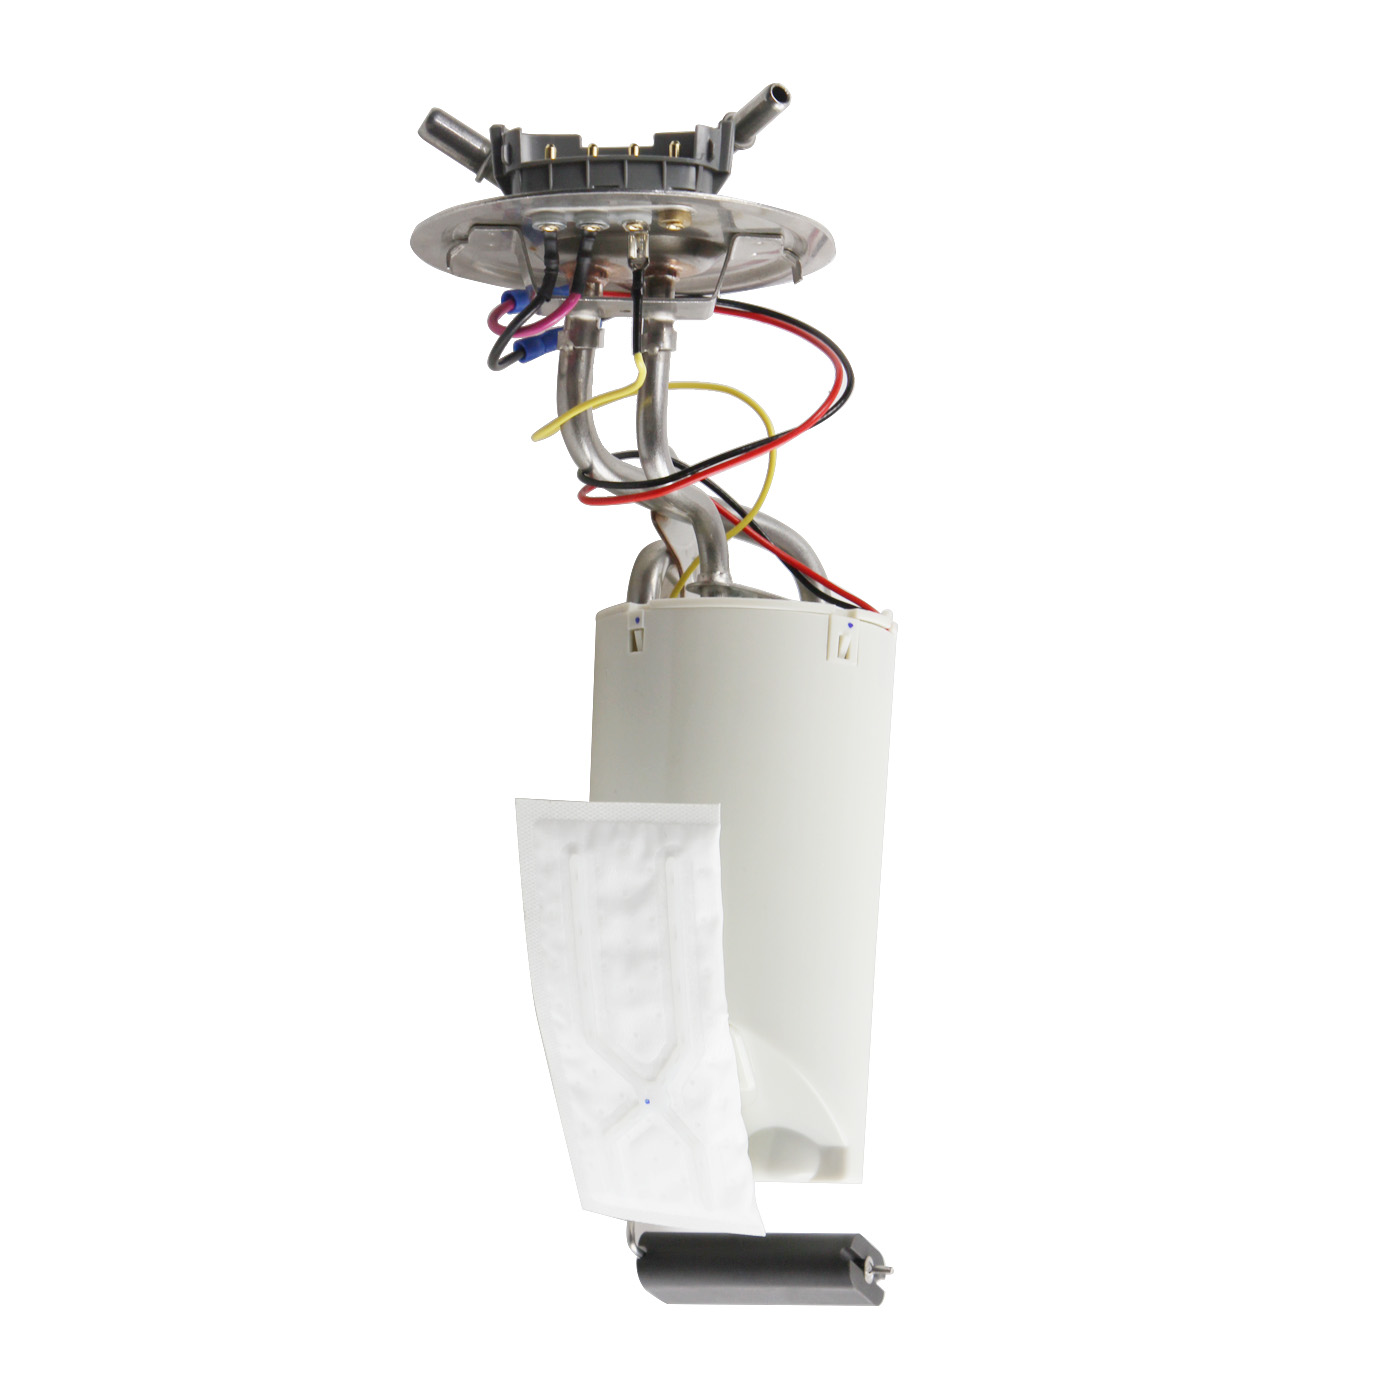 New Herko Automotive Fuel Pump Module 254GE For Ford F-150 SP33A1H